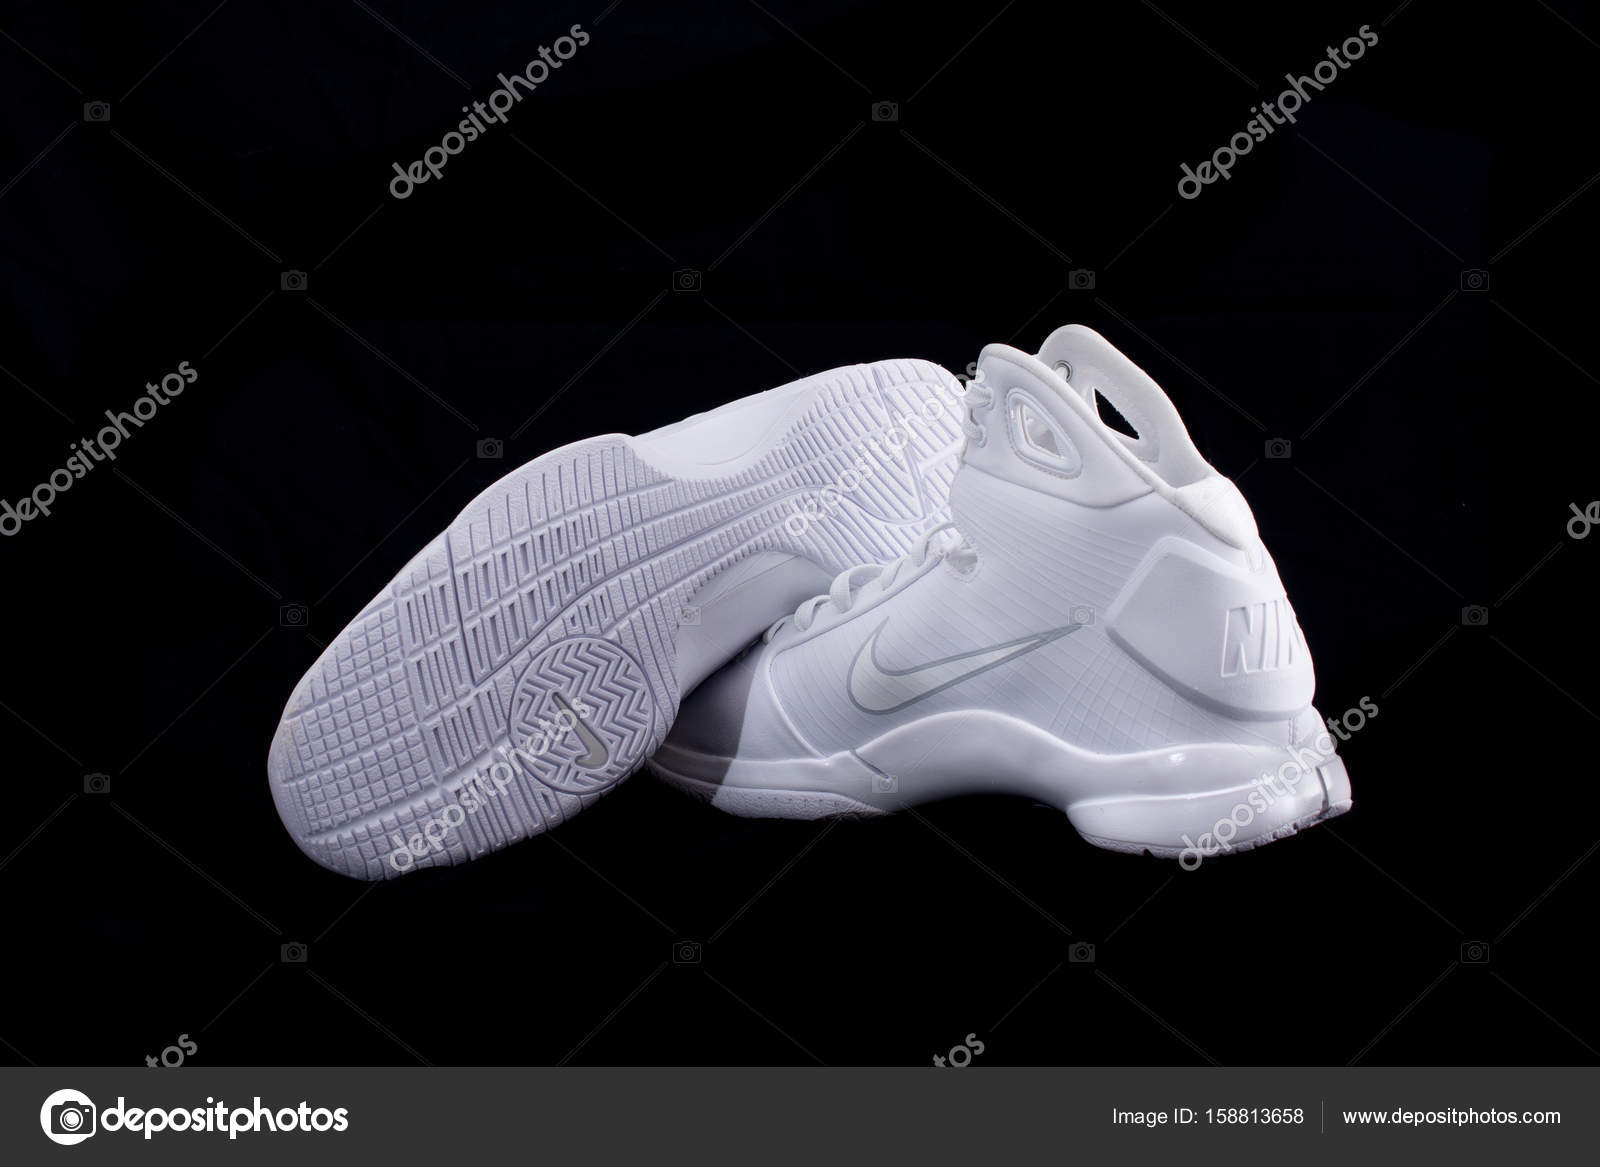 Nike Hyperdunk White High Top Basketball Shoes Sneakers Stock Photo